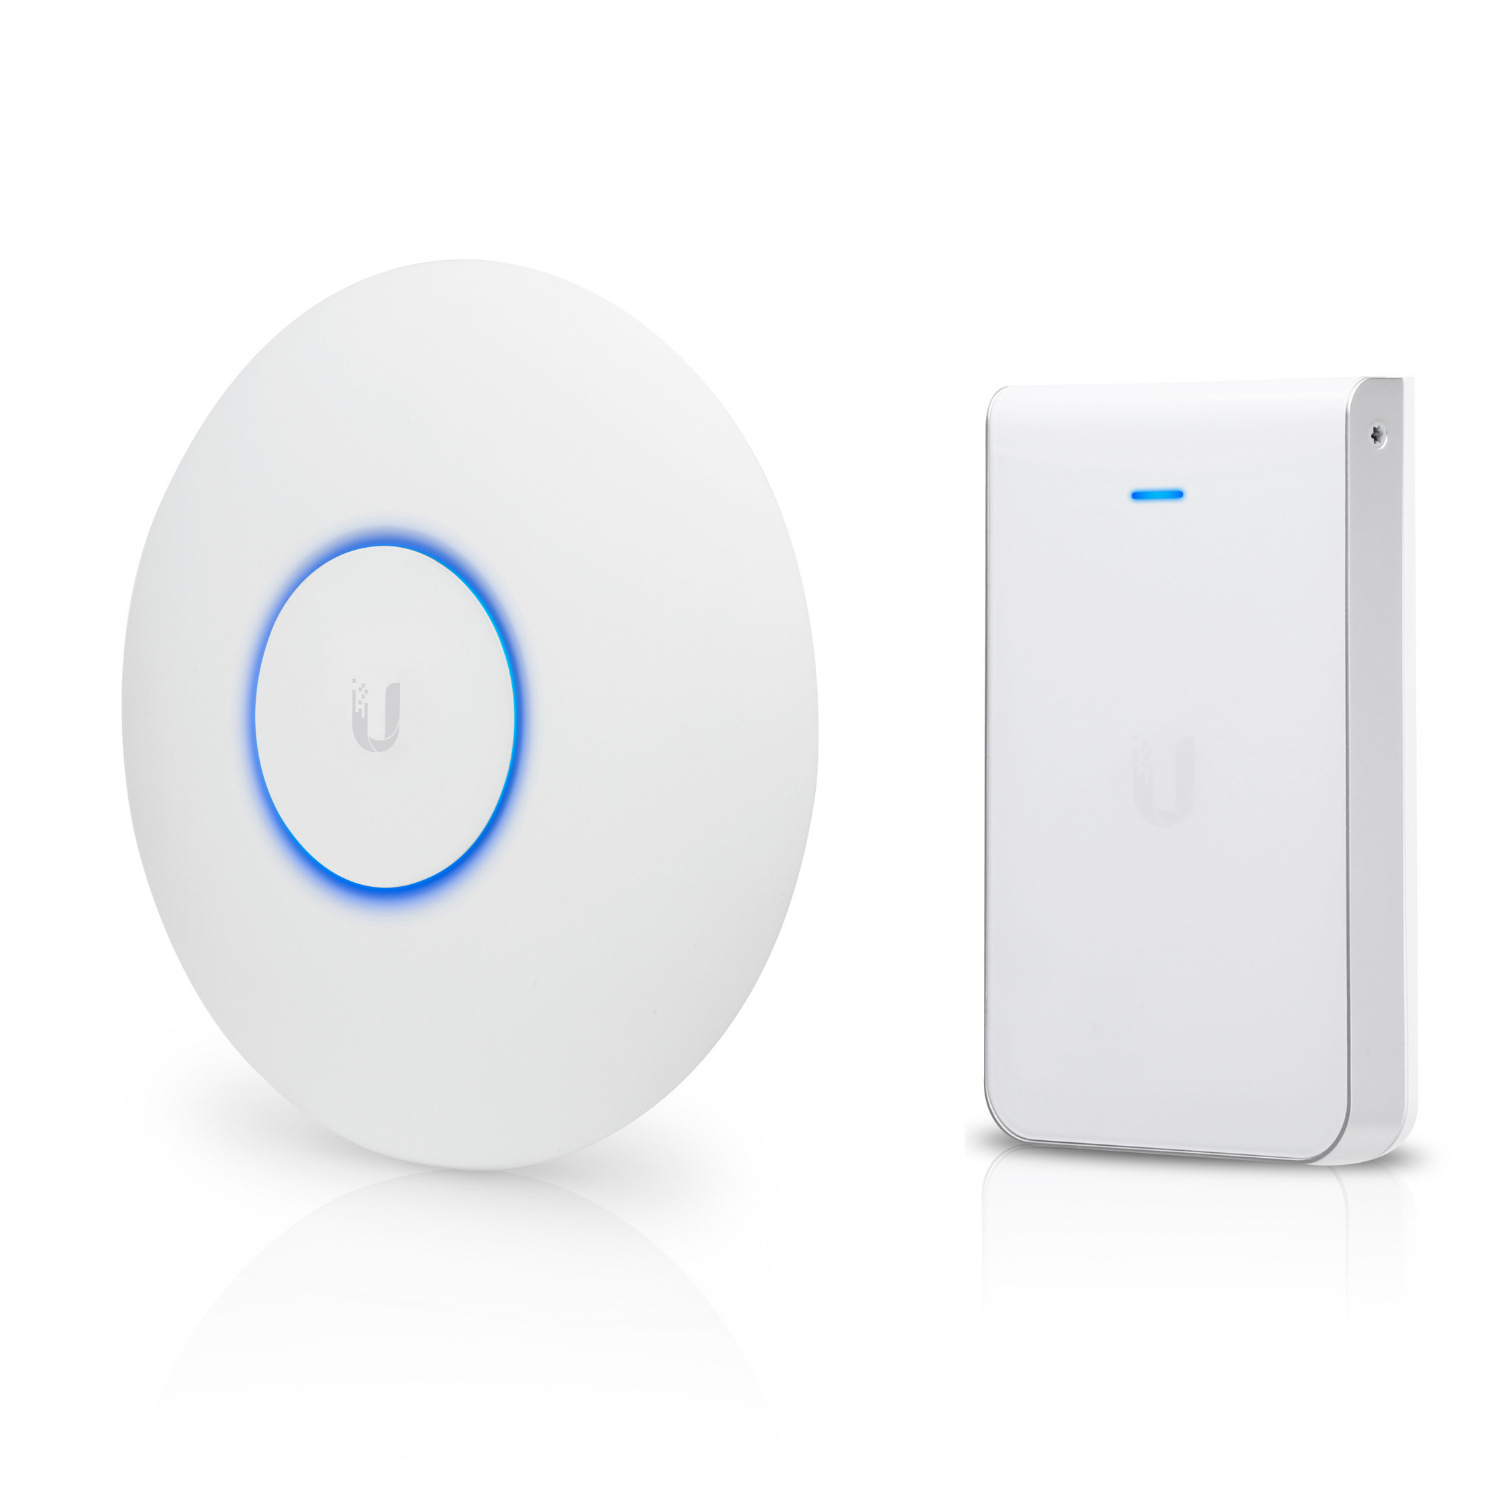 WiFiGuys wireless access points provide a permanent solution to common WiFi problems